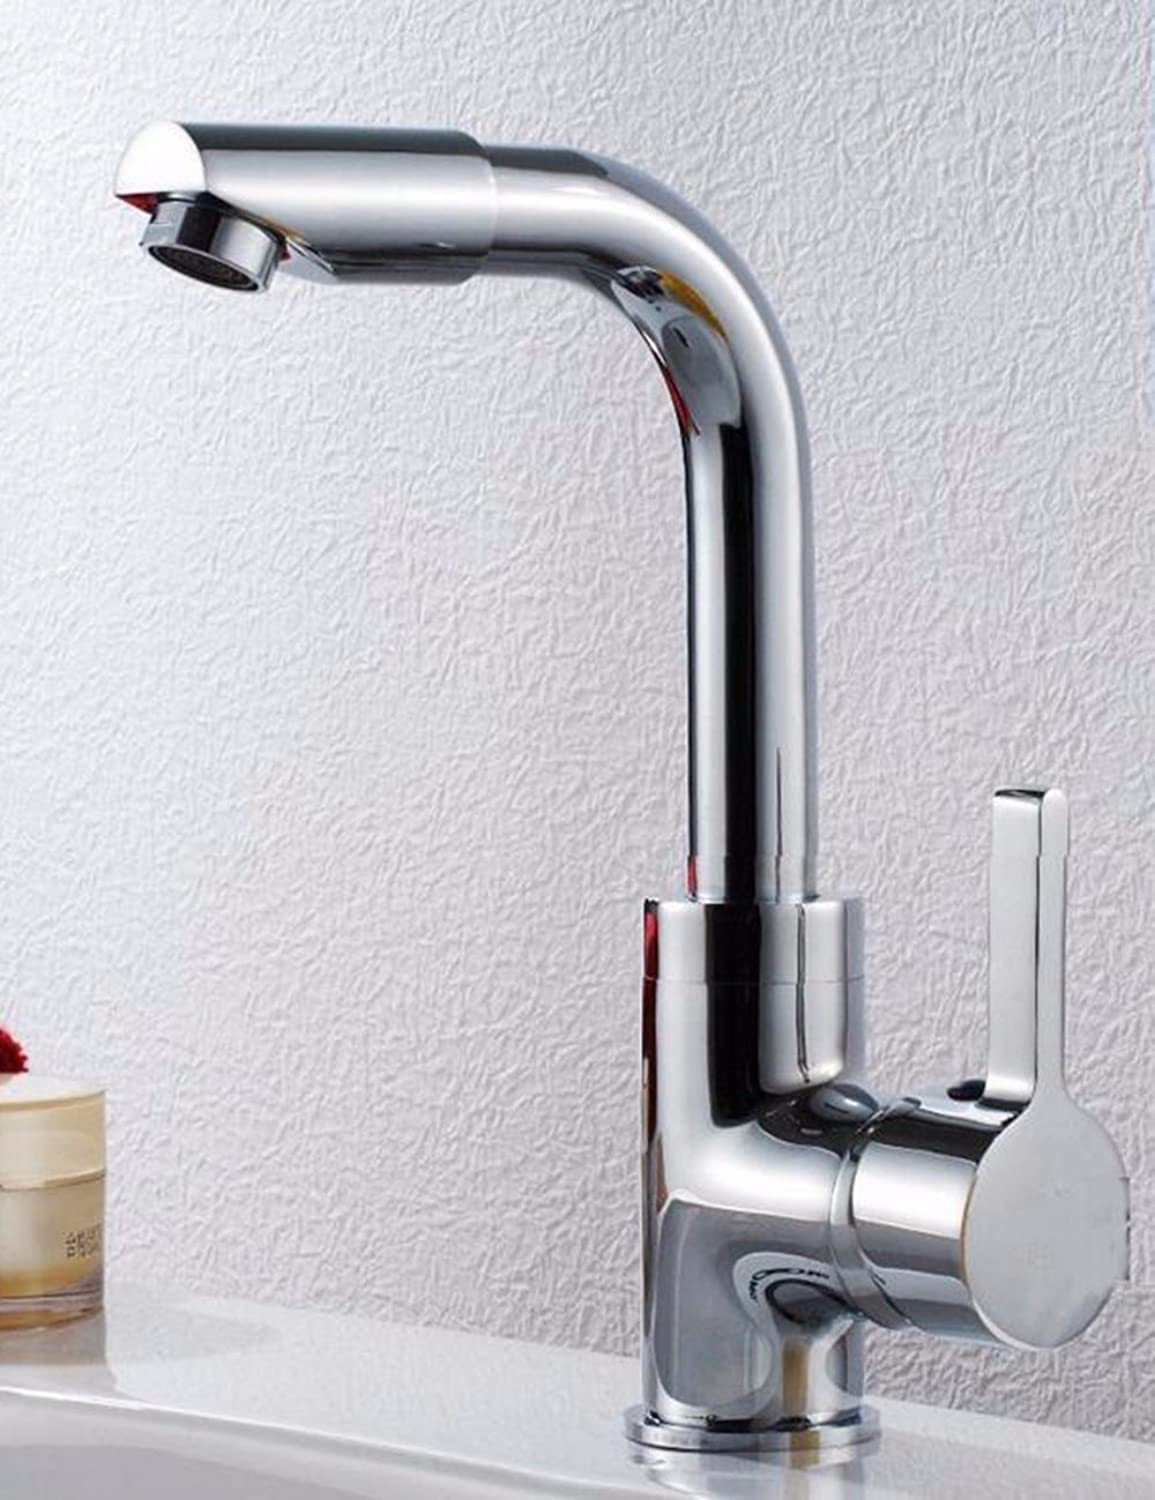 LHbox Basin Mixer Tap Bathroom Sink Faucet Wash Basin mixer, basin sink single hole and cold water on tap, the sink full brass swivel Faucet